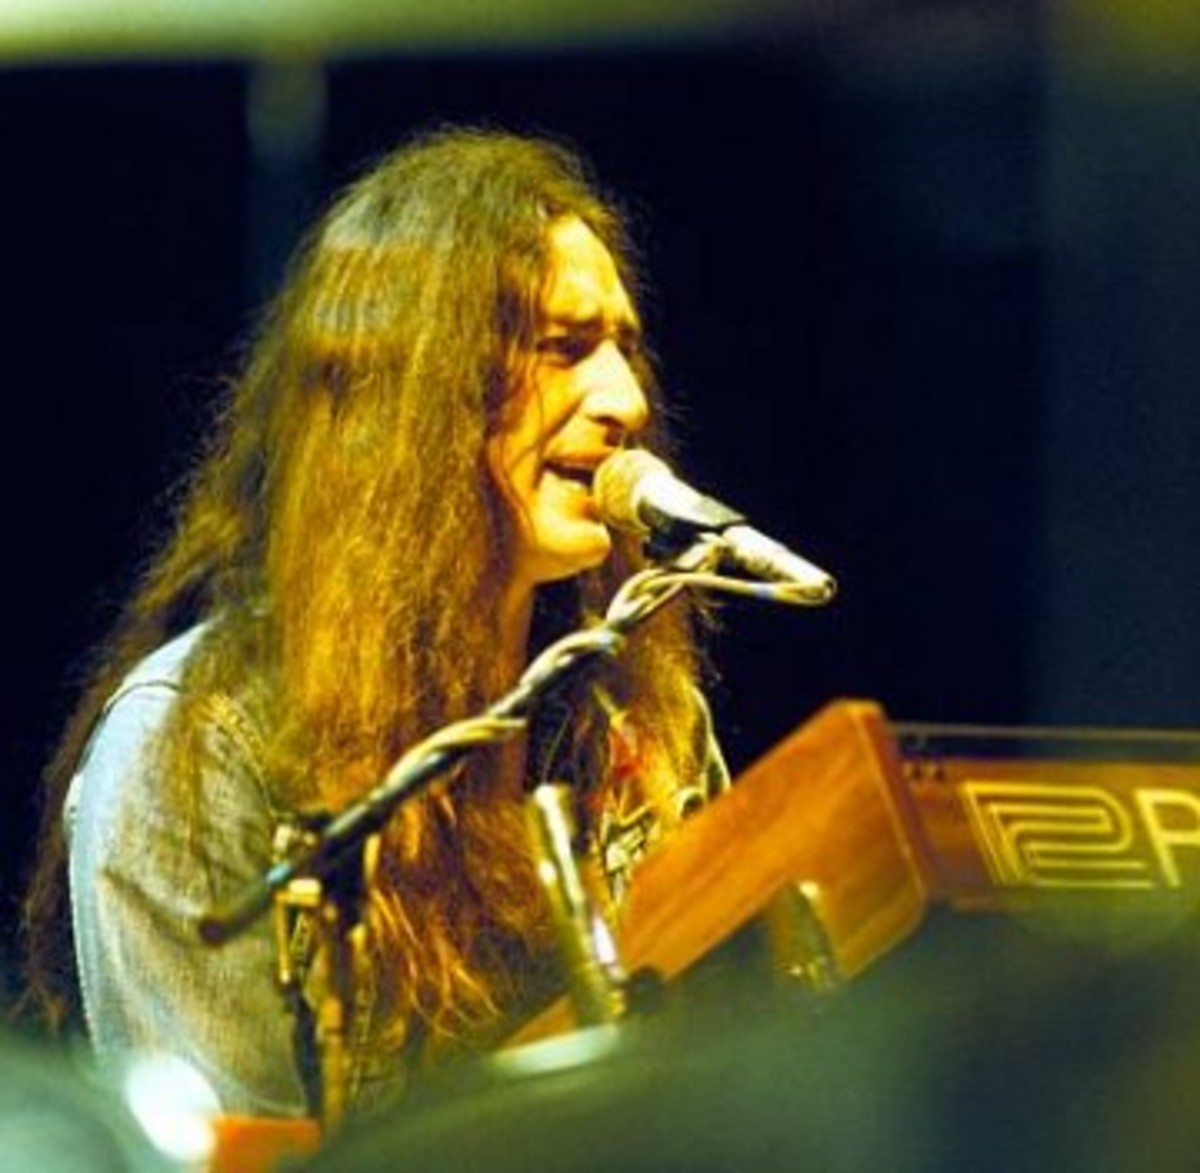 Ken Hensley, photo by Fin Costello/Redferns, Getty Images